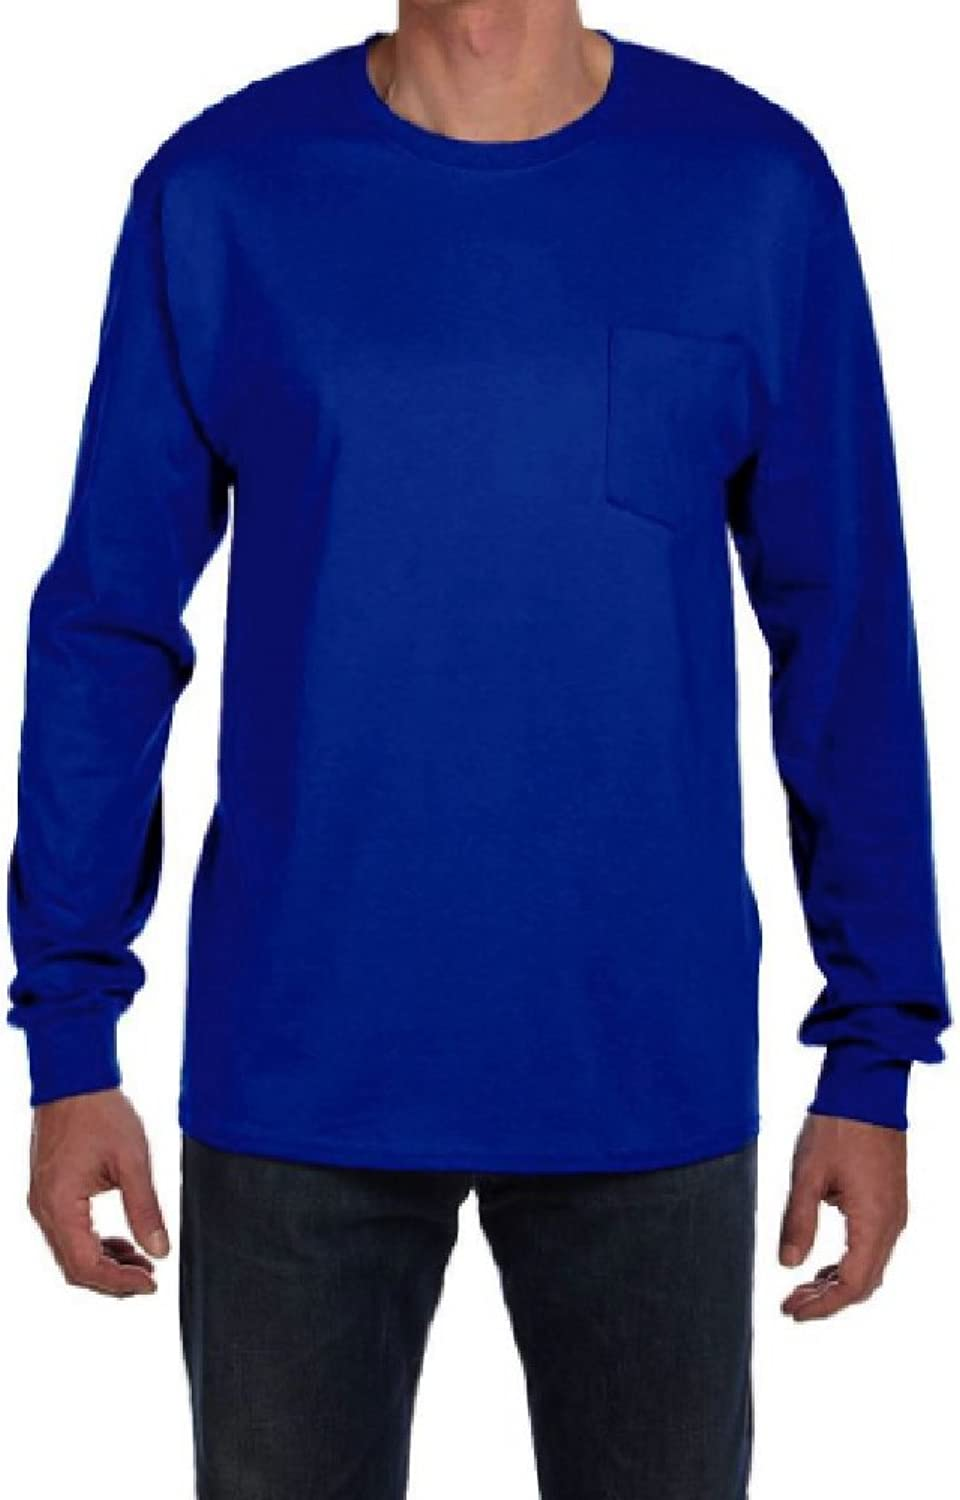 StoutMensShop Long Sleeve Big and Tall Beefy TShirts with Pocket in Vibrant colors USA Made